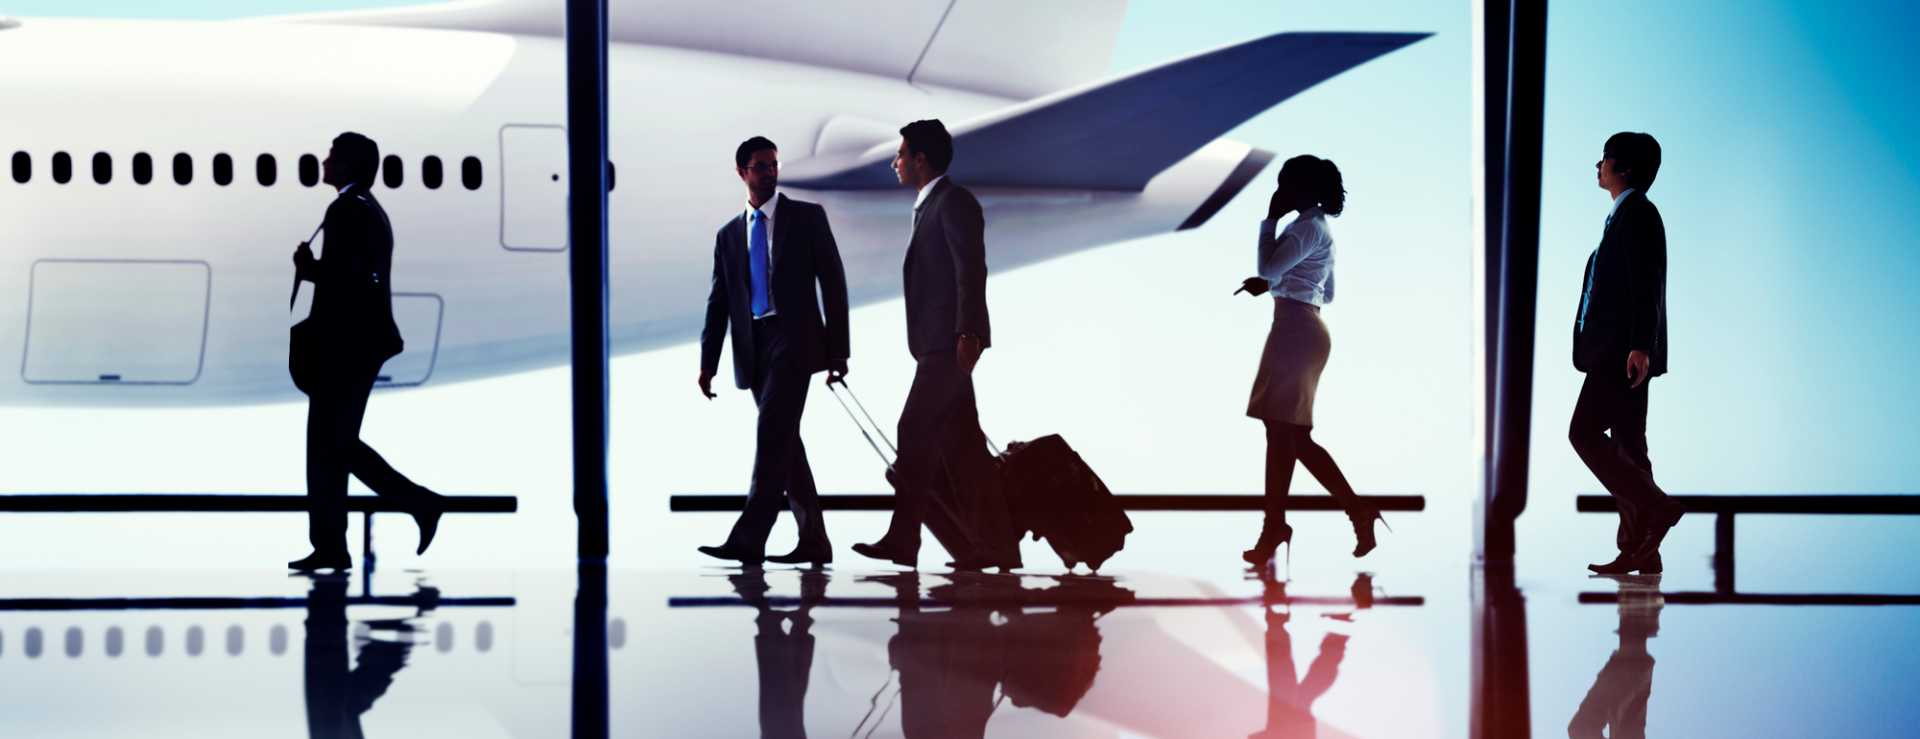 Silhouettes of Business People Travel Aviation - image courtesy of Depositphotos.